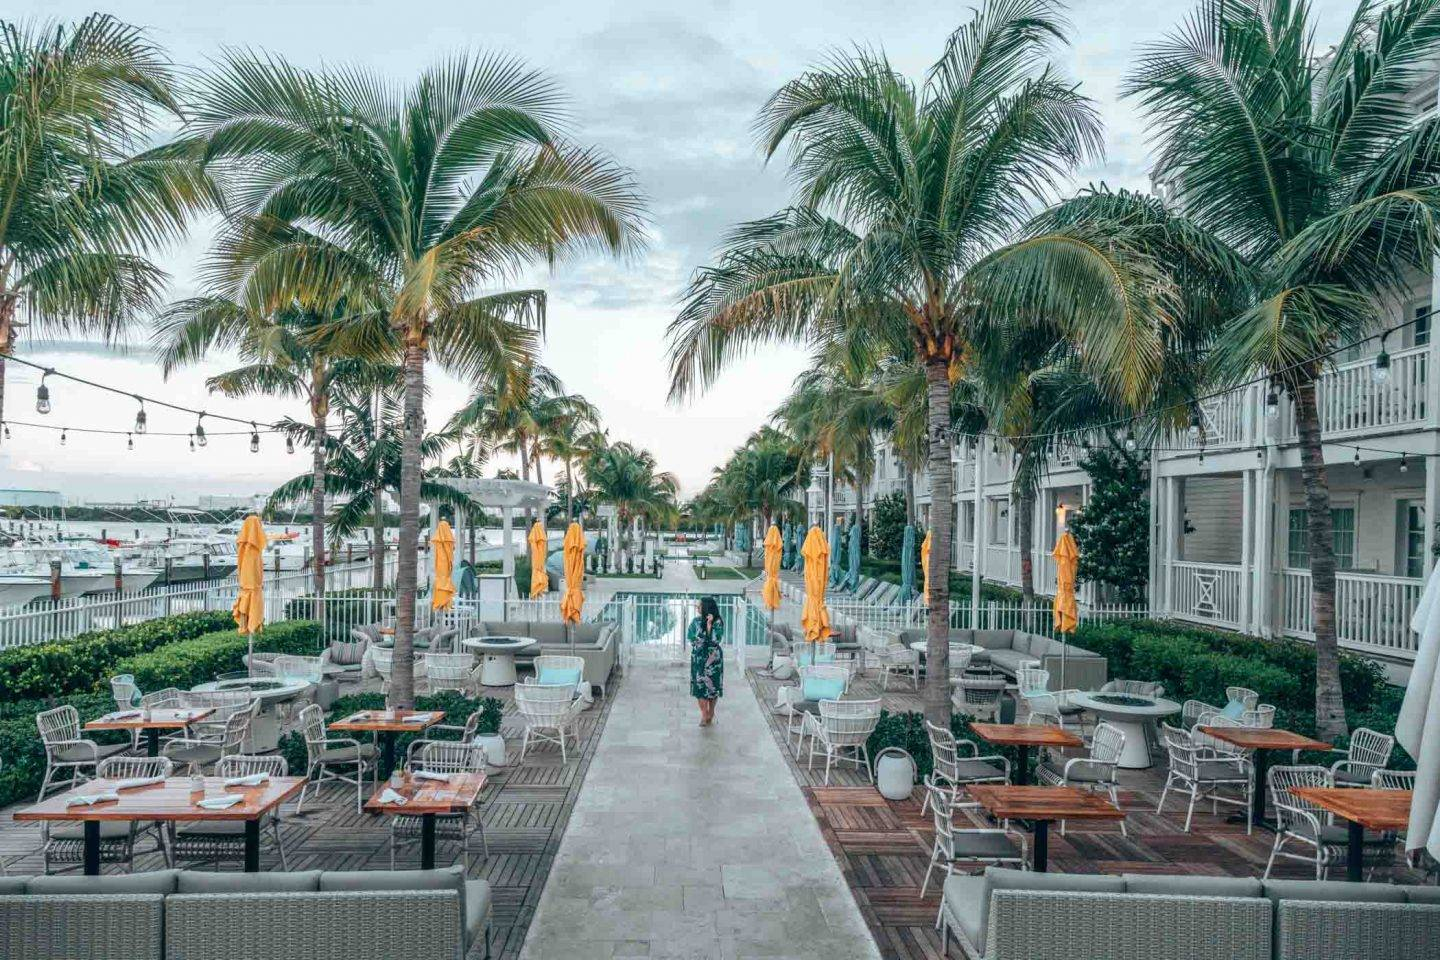 One of the best part of Florida- Key West. Here is where to stay in Key West, and what to do, and what to eat.